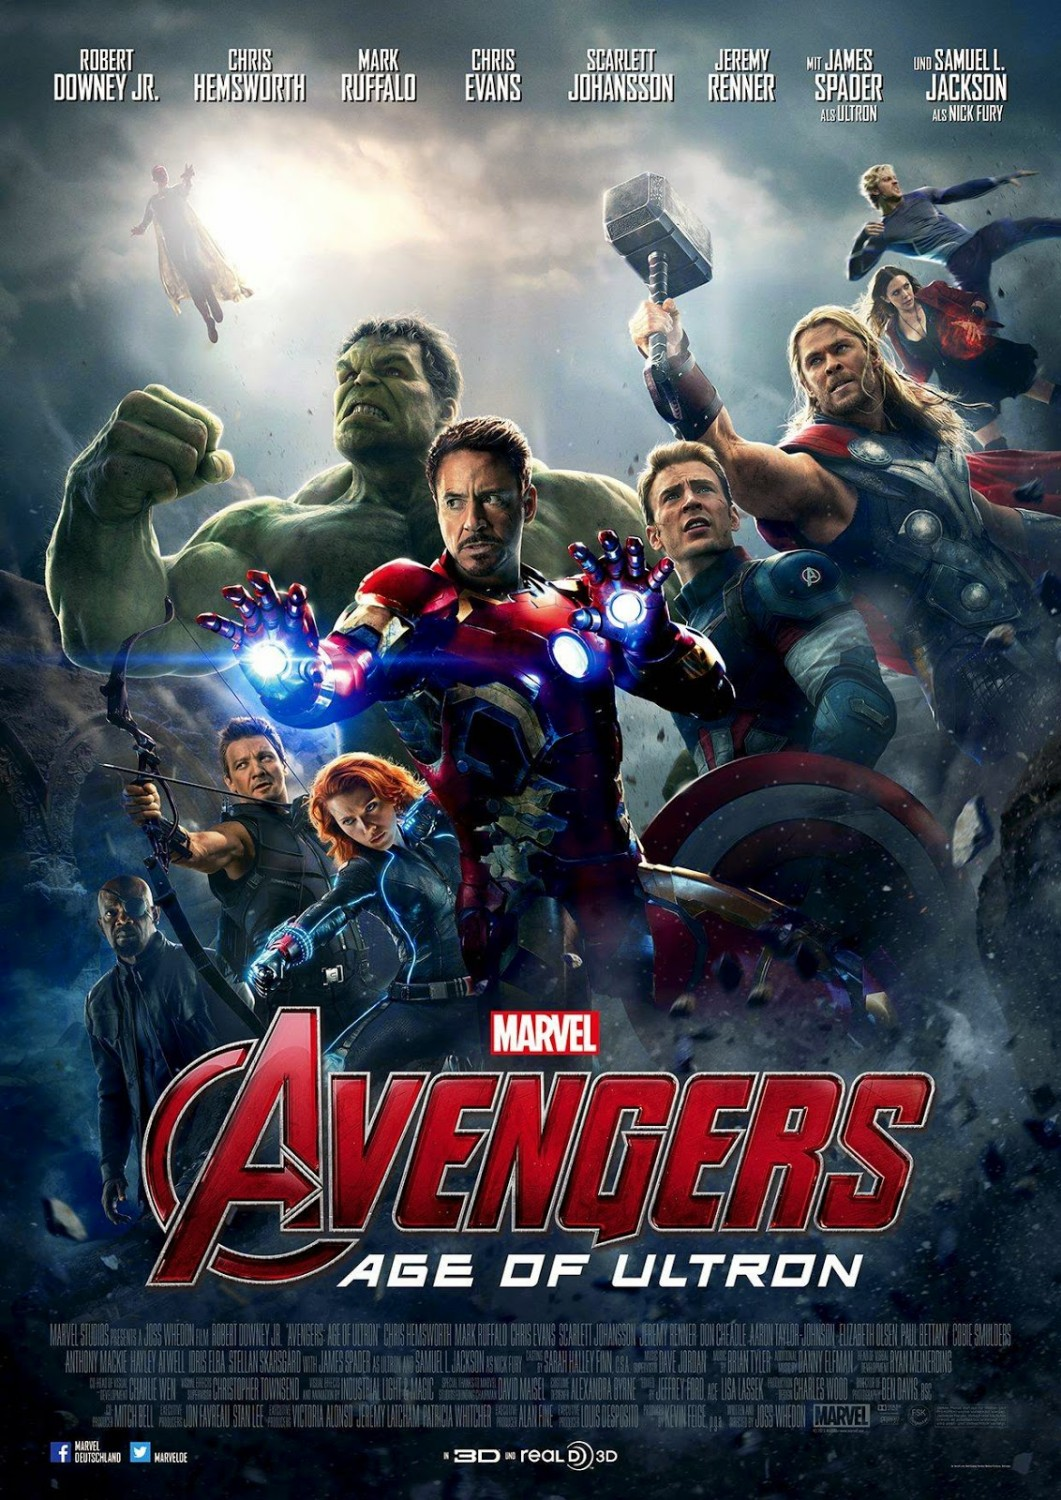 Avengers Age of Ultron official poster 2 - blackfilm.com ...